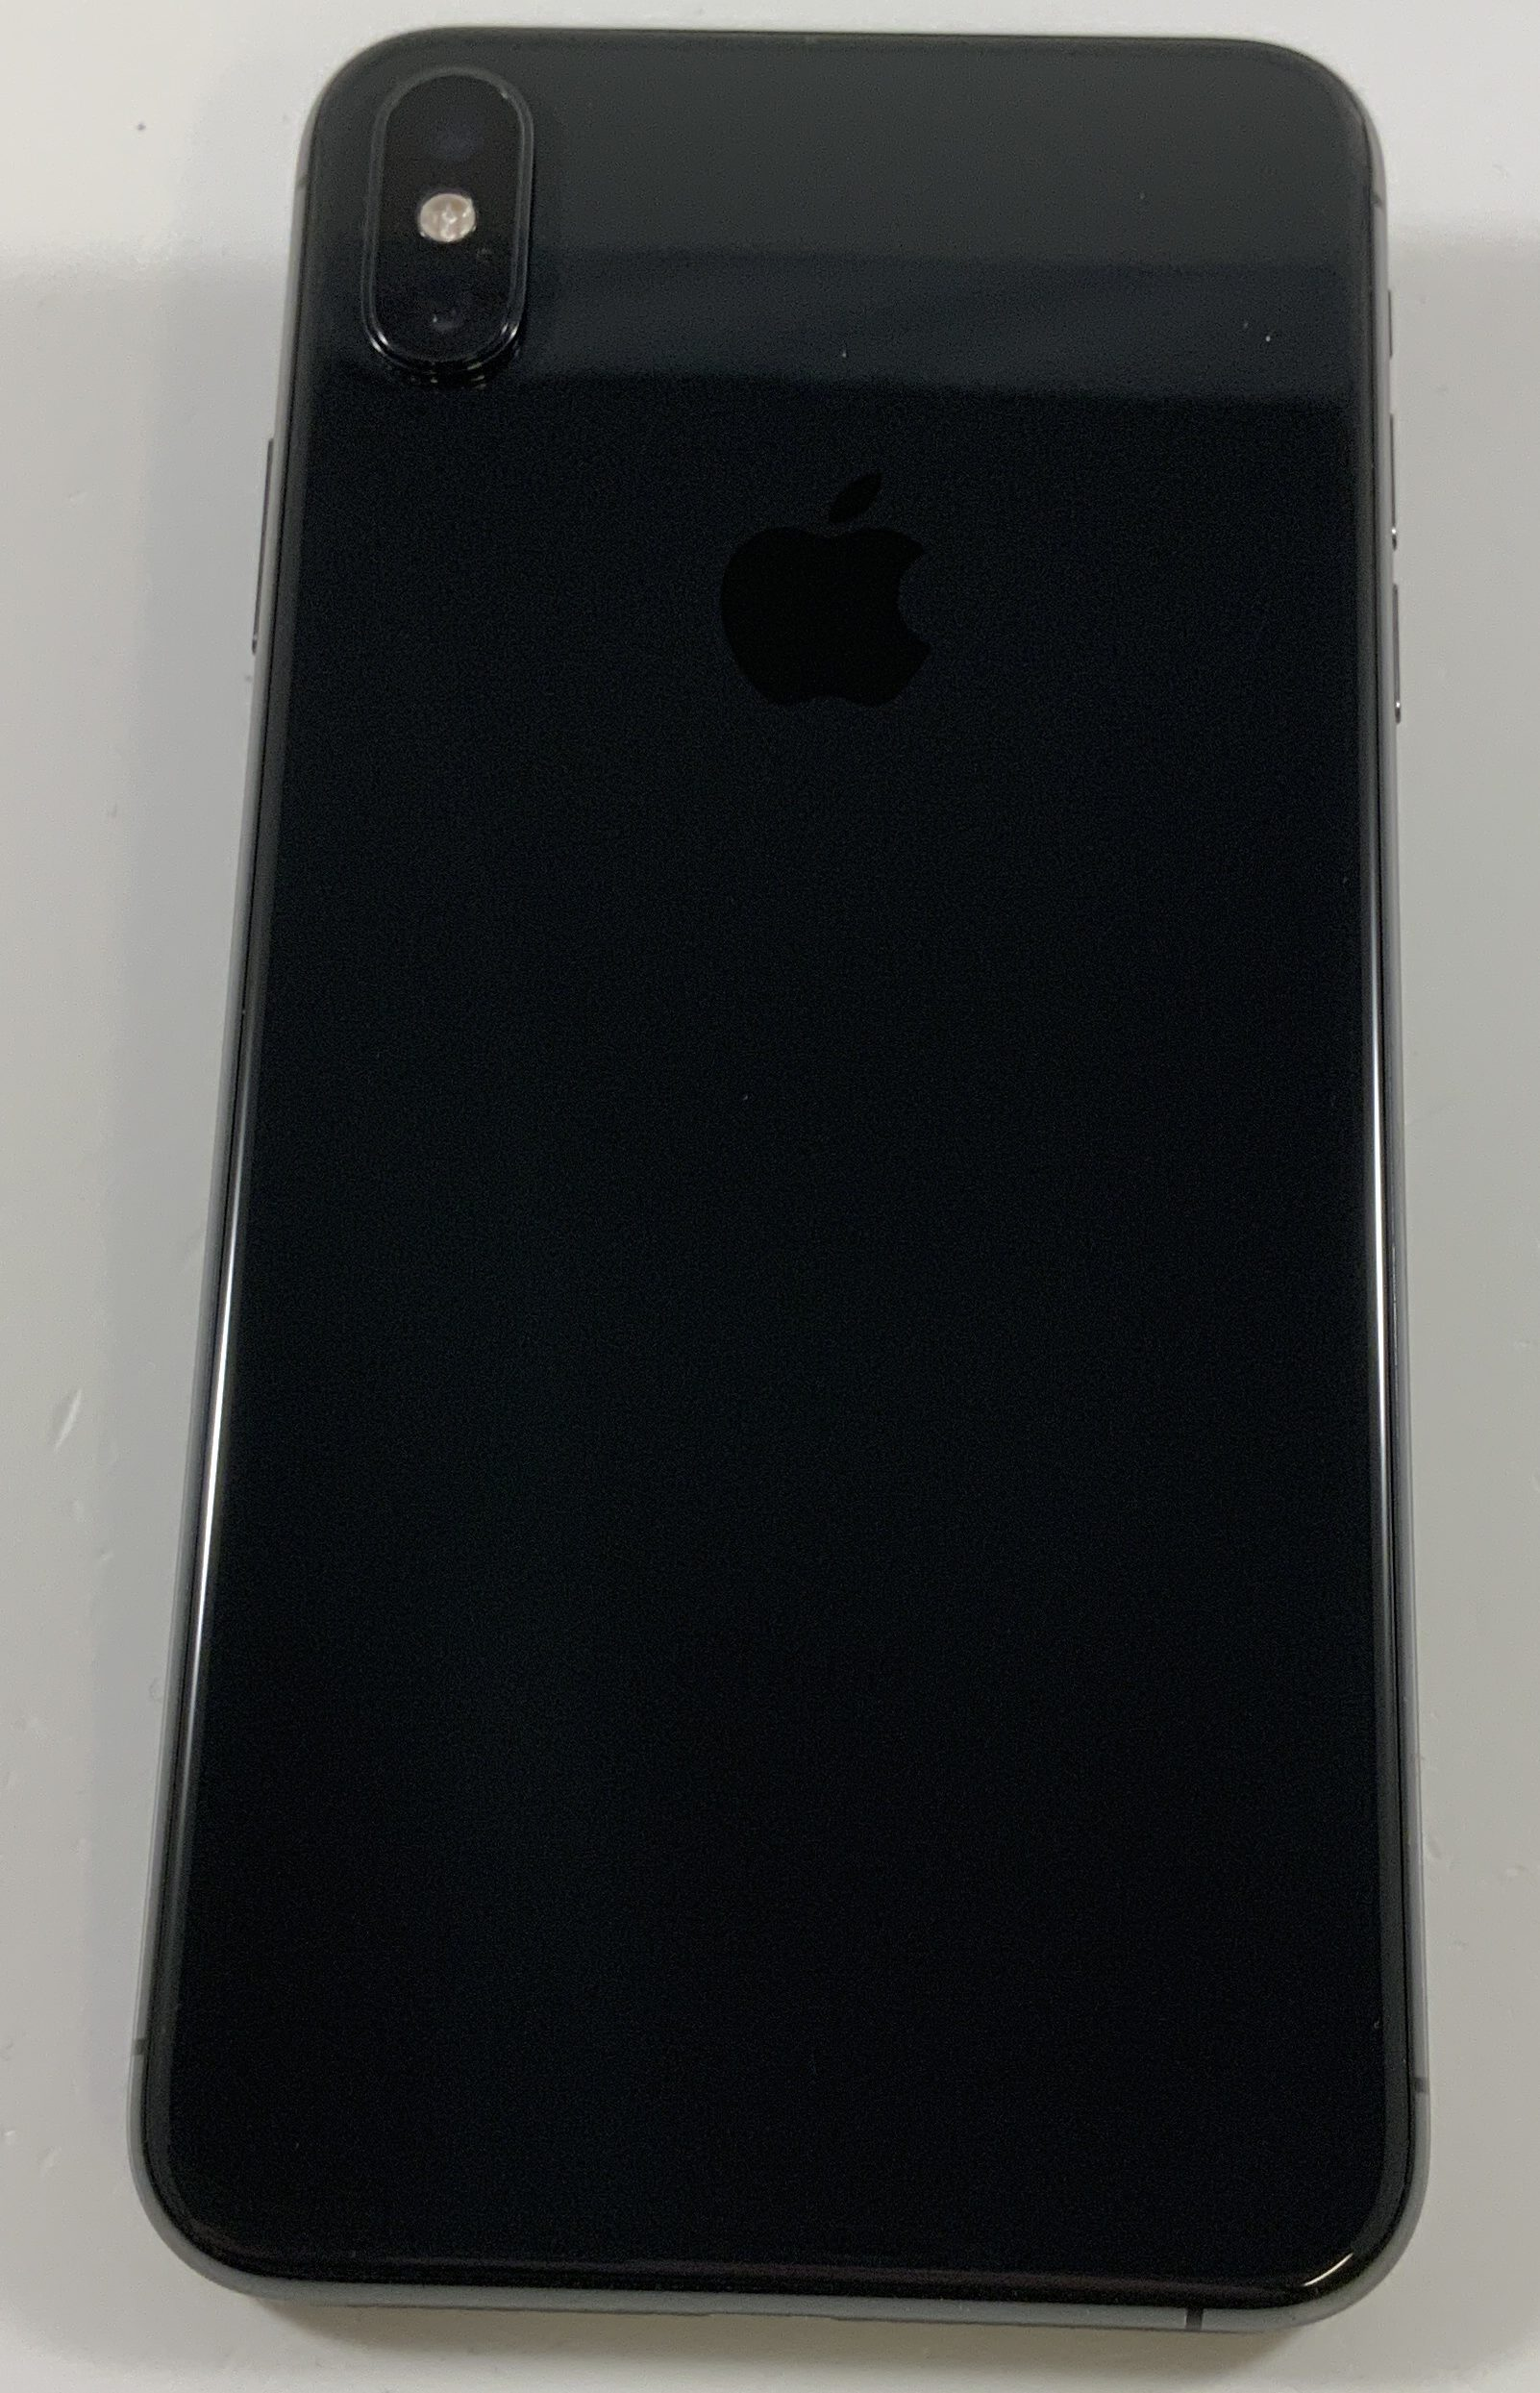 iPhone XS Max 512GB, 512GB, Space Gray, image 2